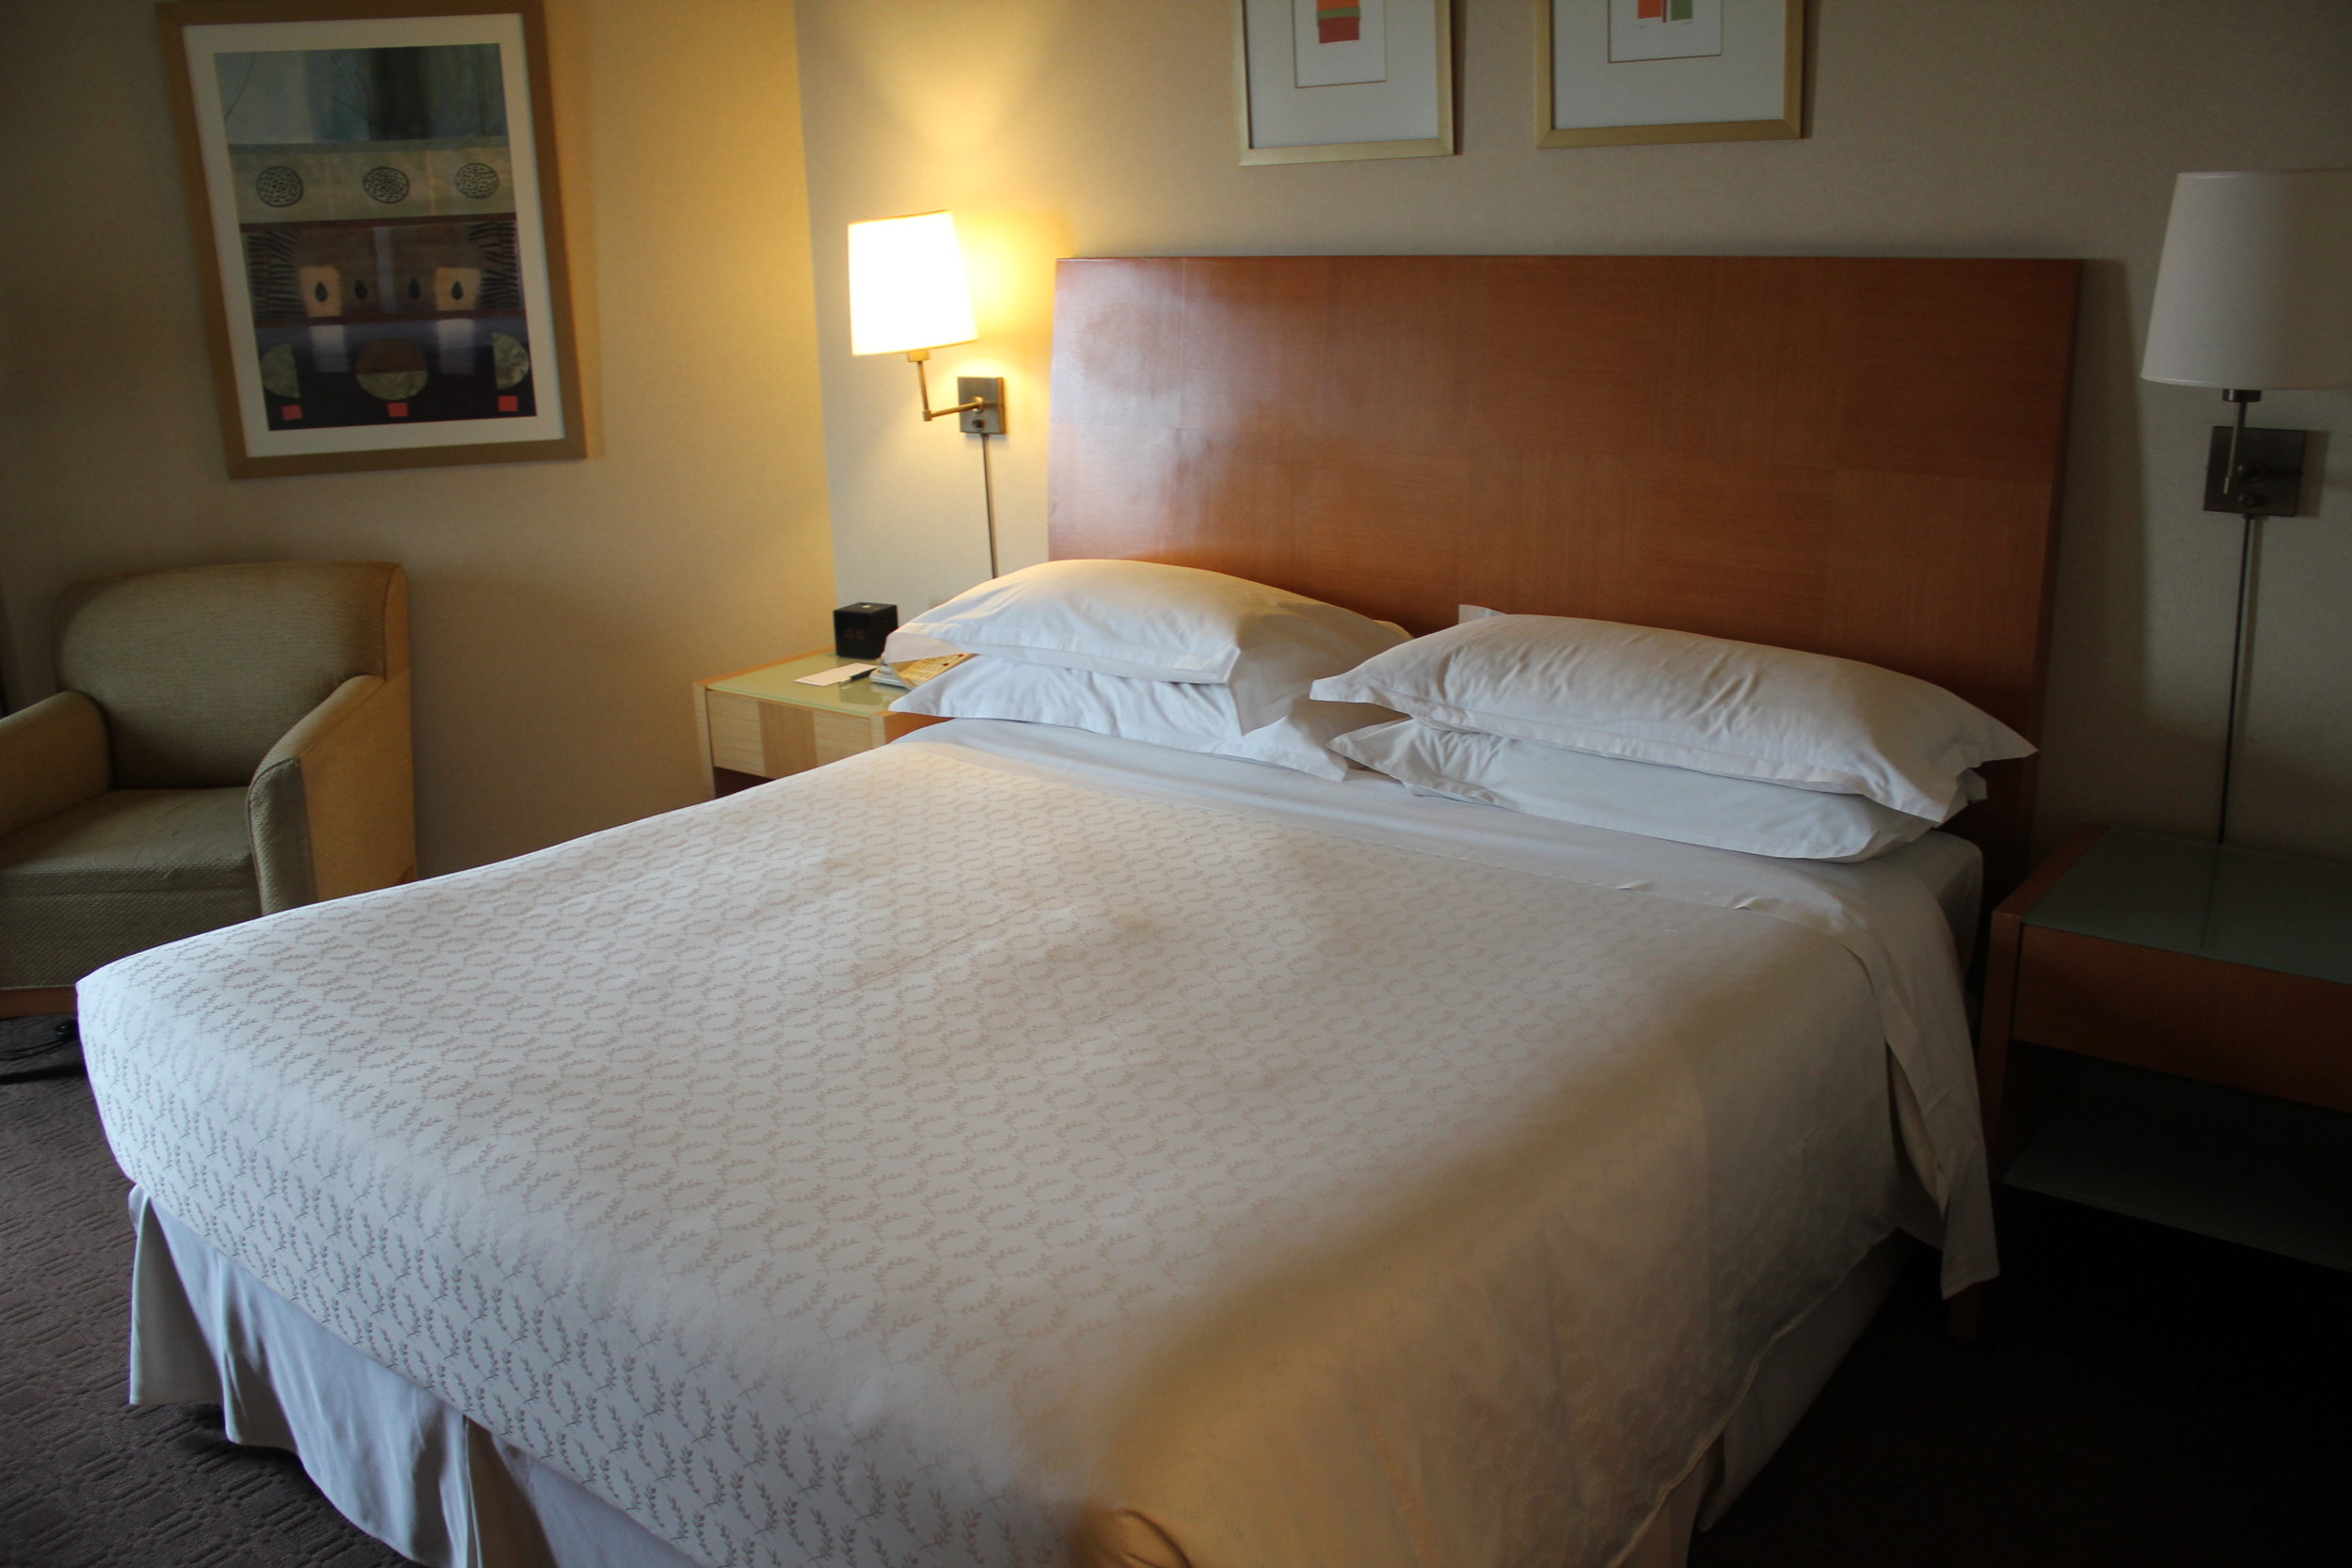 Sheraton Buenos Aires – King bed